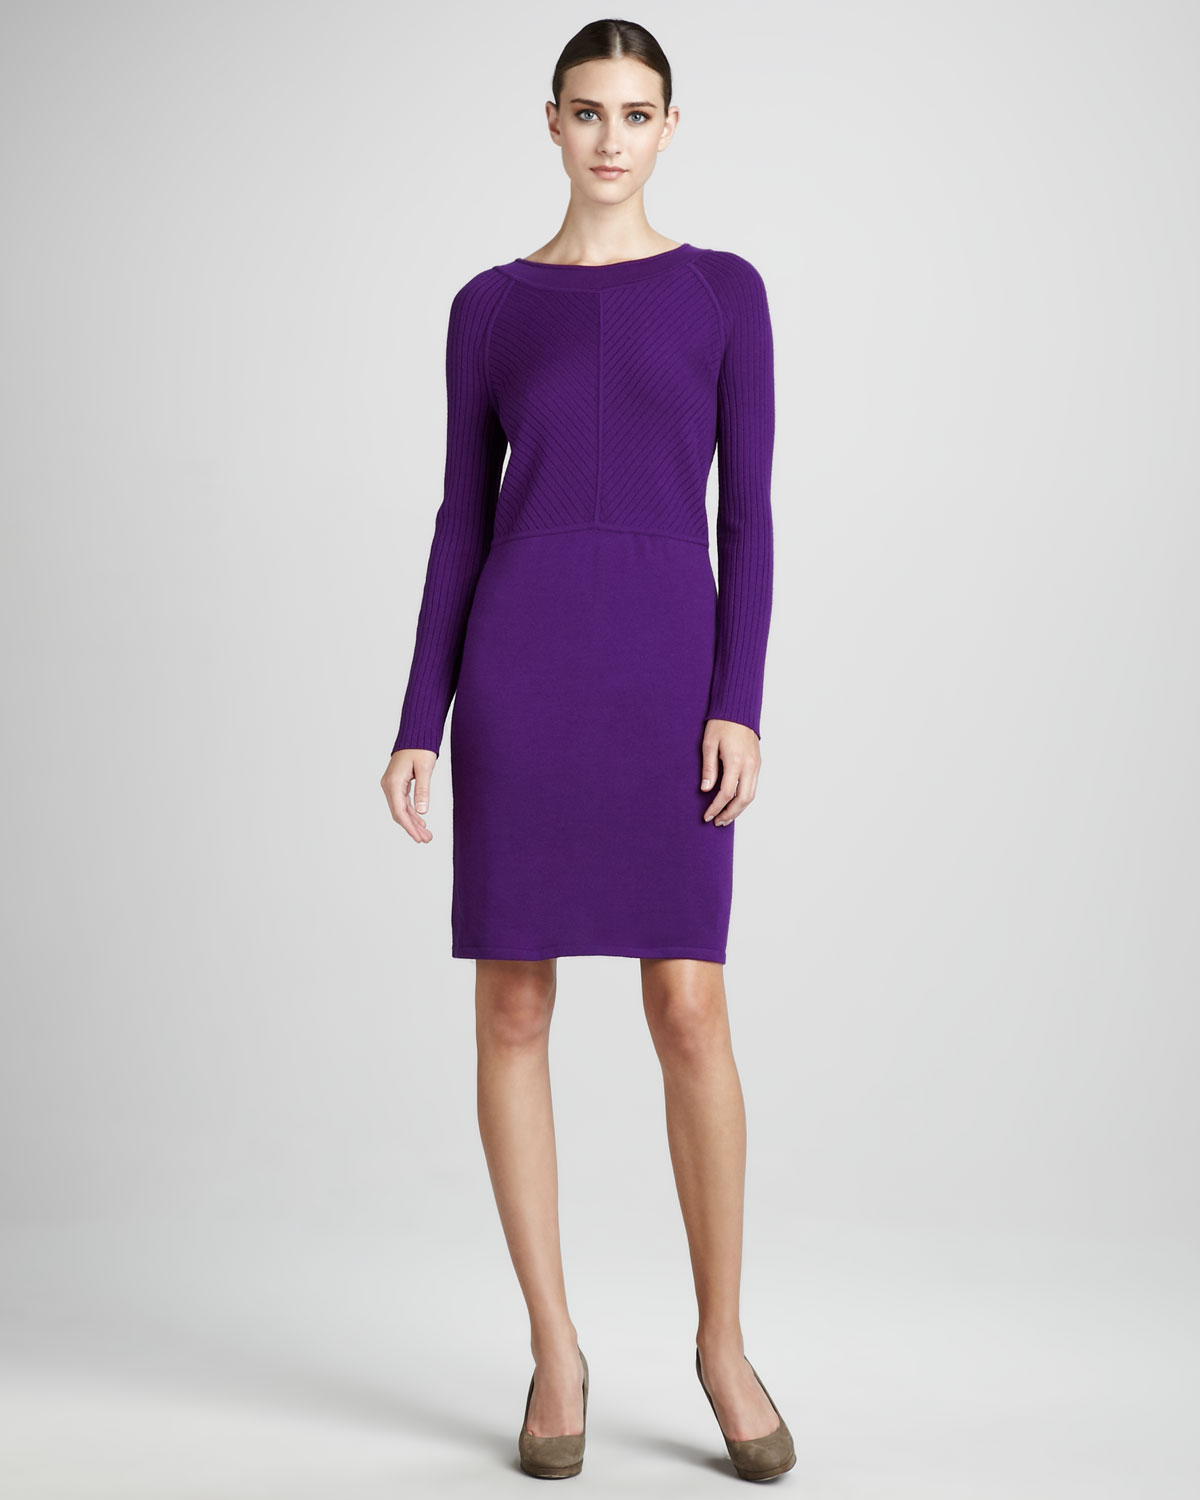 Free shipping and returns on Wool & Wool Blend Work Dresses at mundo-halflife.tk